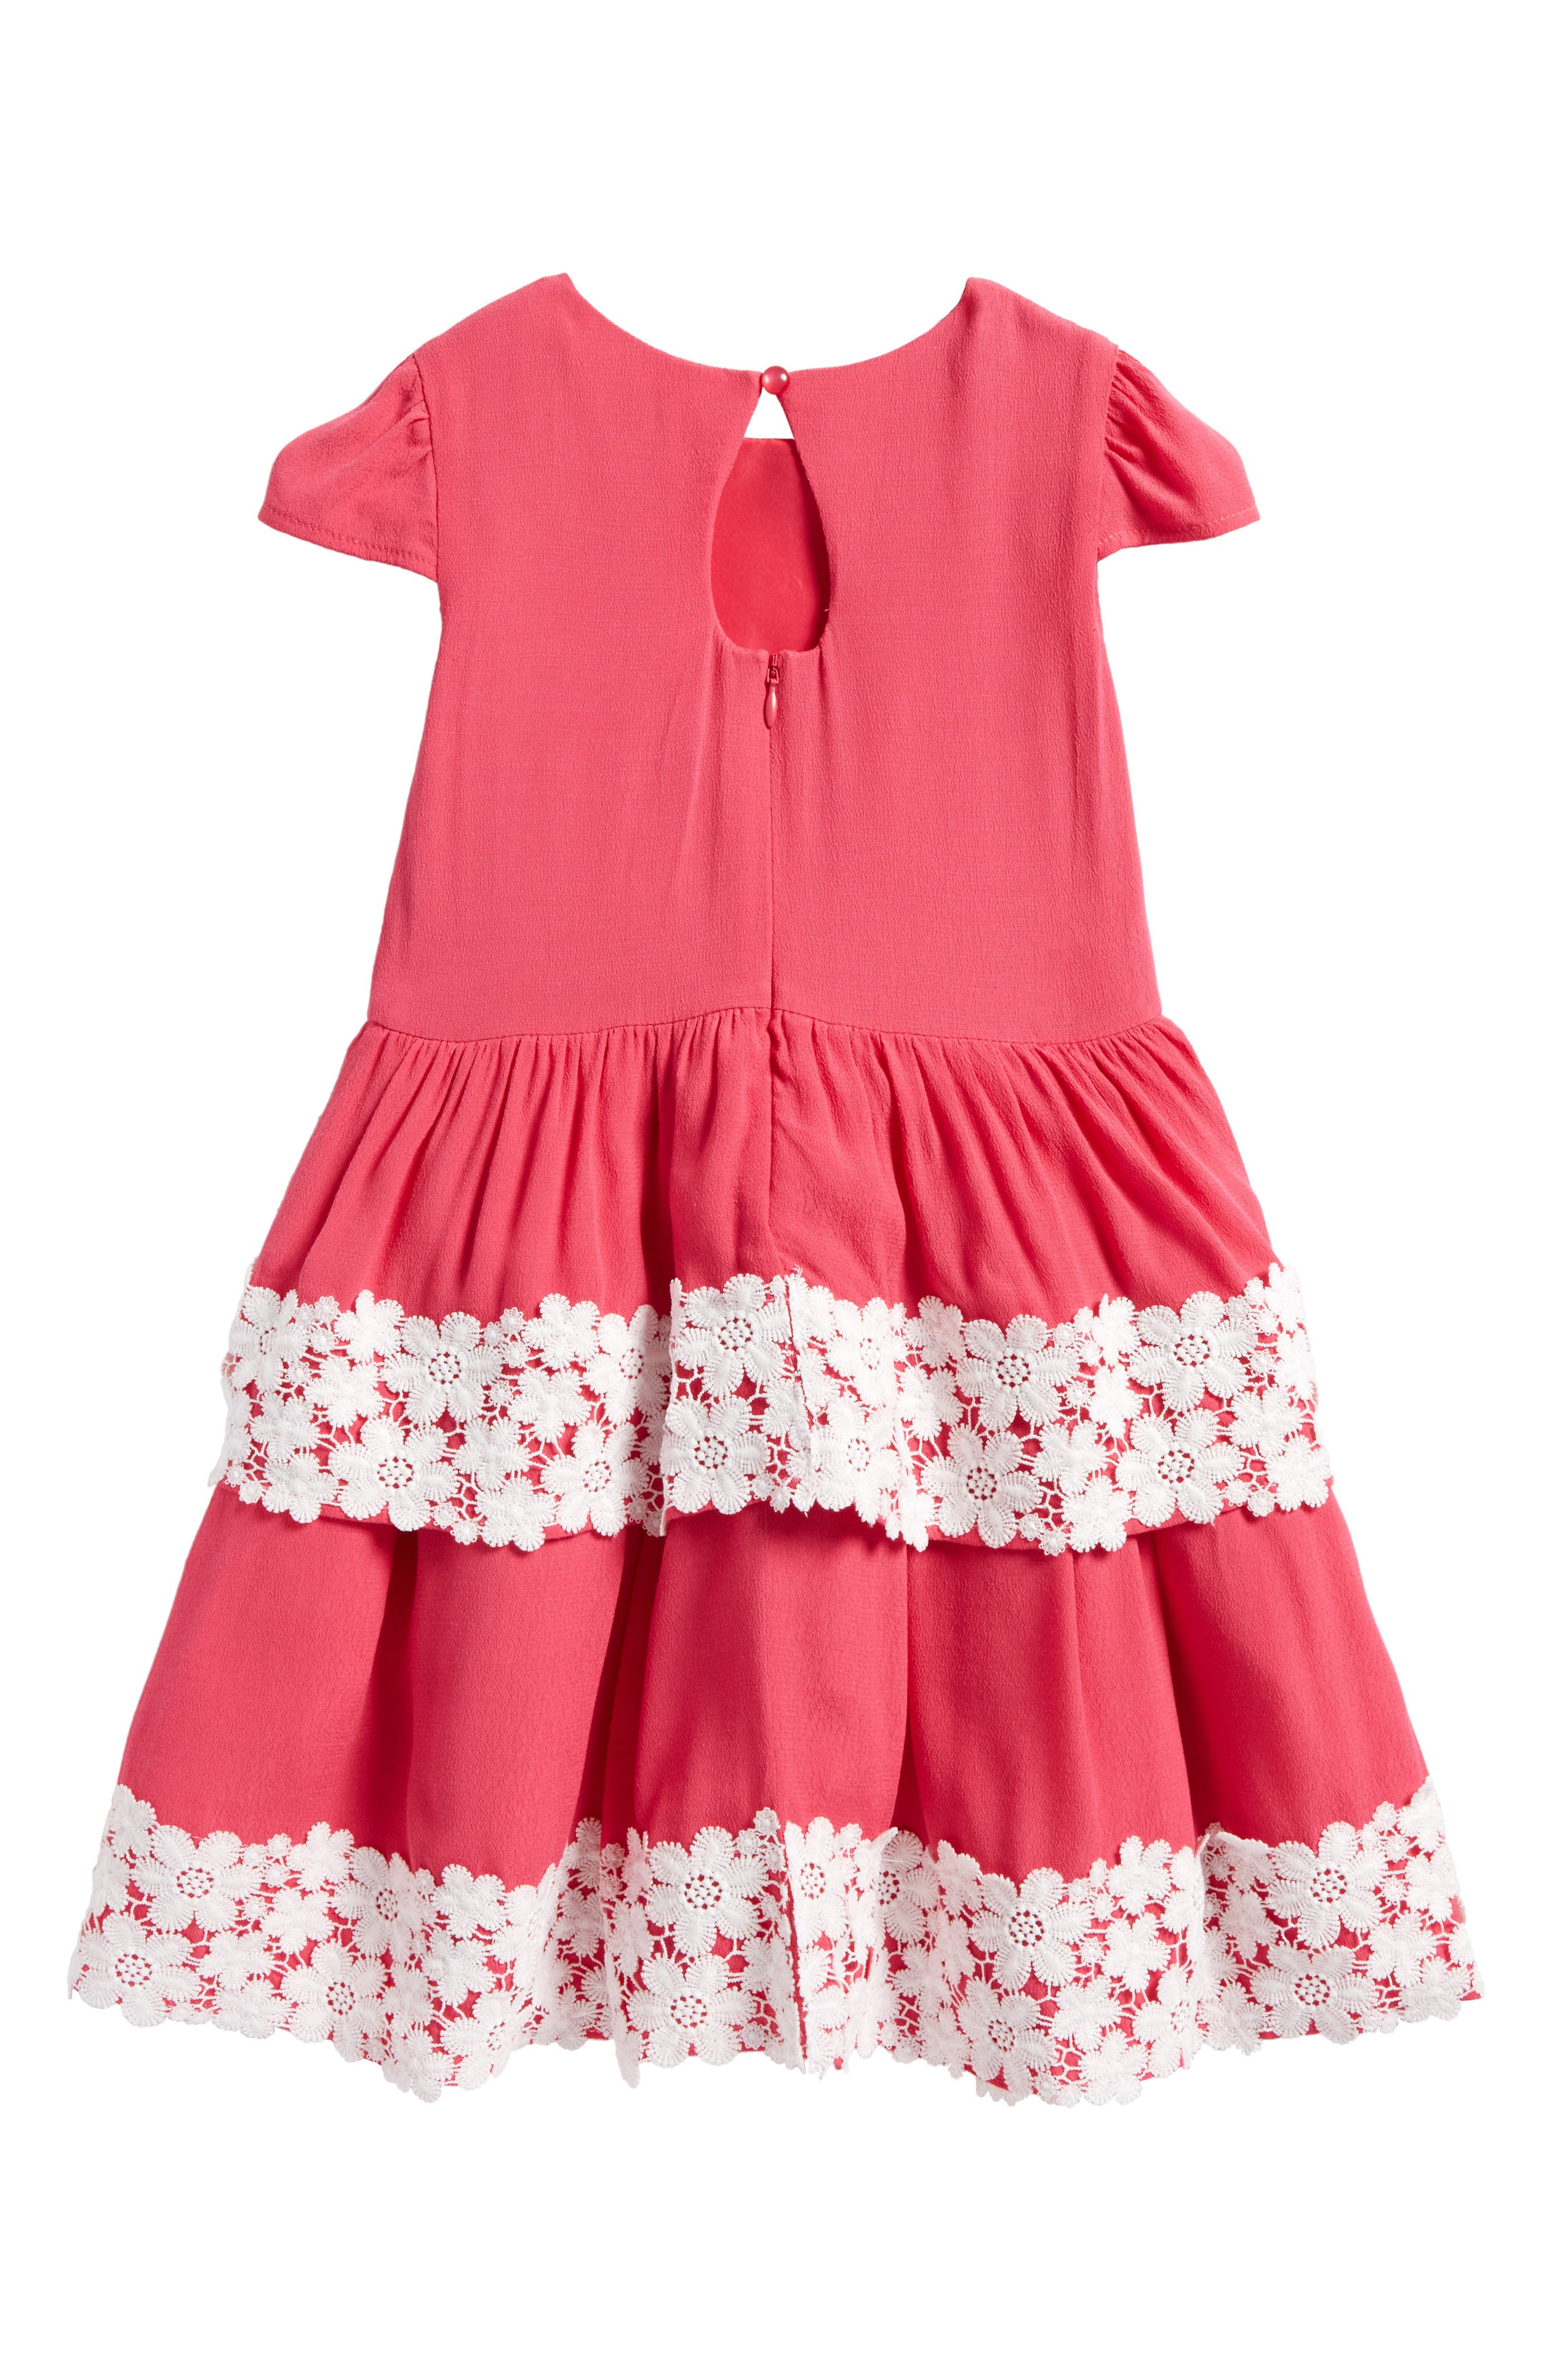 Tiered Skirt Dress,                             Alternate thumbnail 2, color,                             Calypso Coral